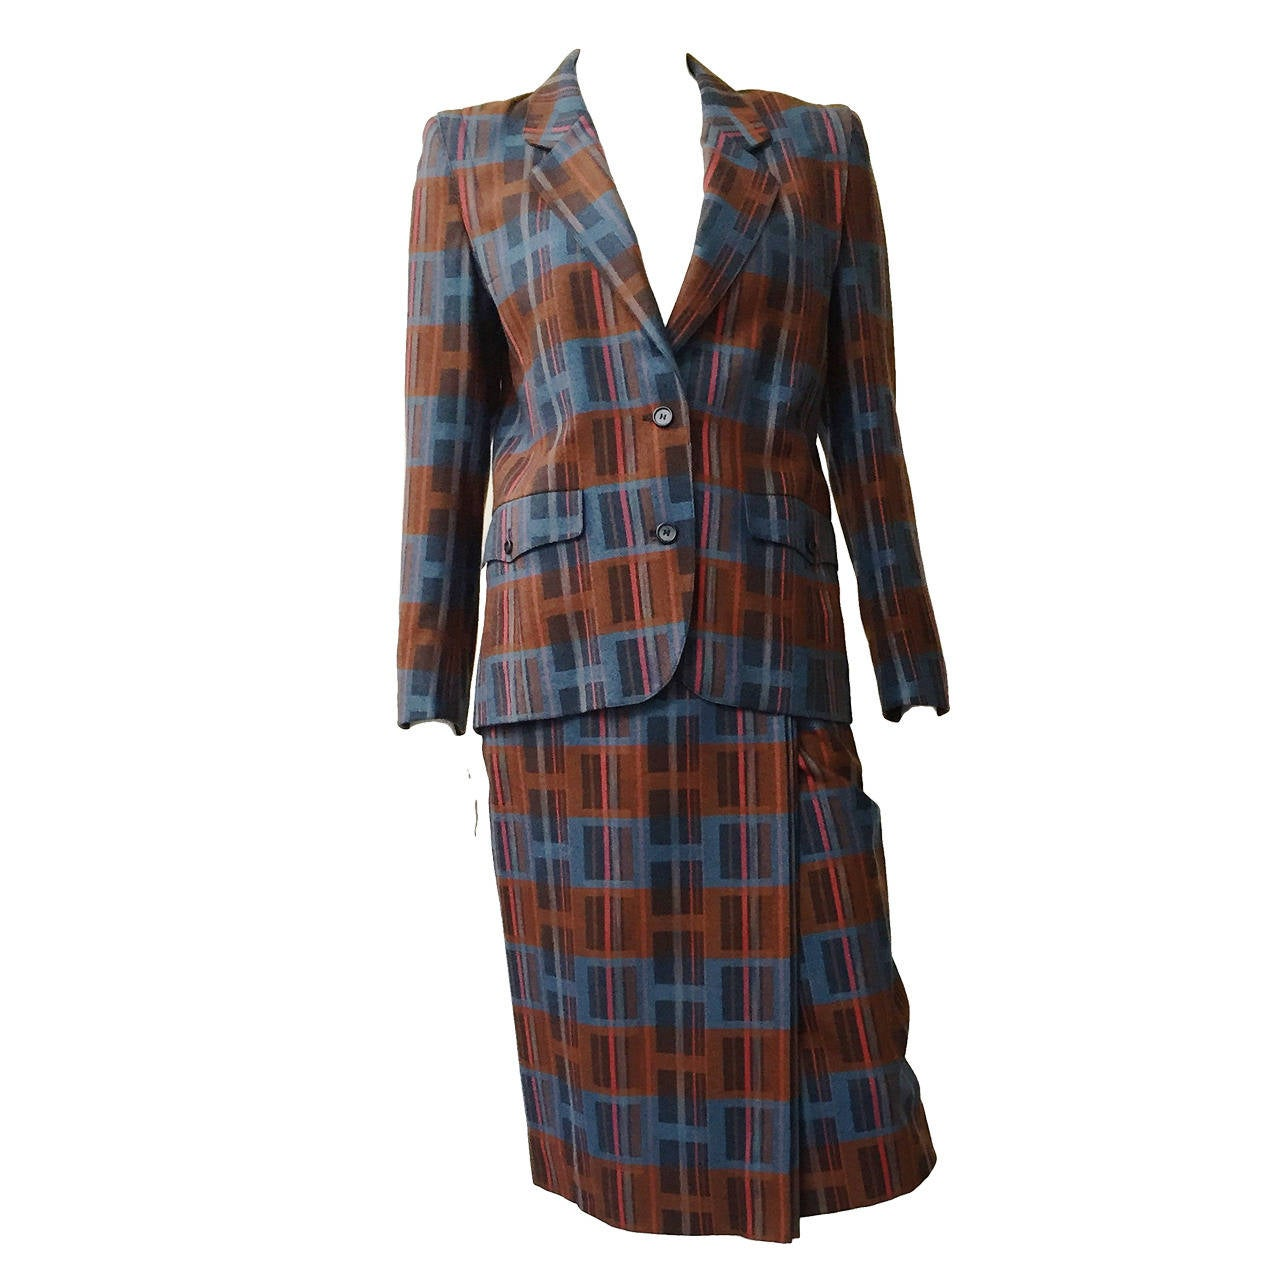 Ted Lapidus 70s modern print wool skirt suit size 6. For Sale